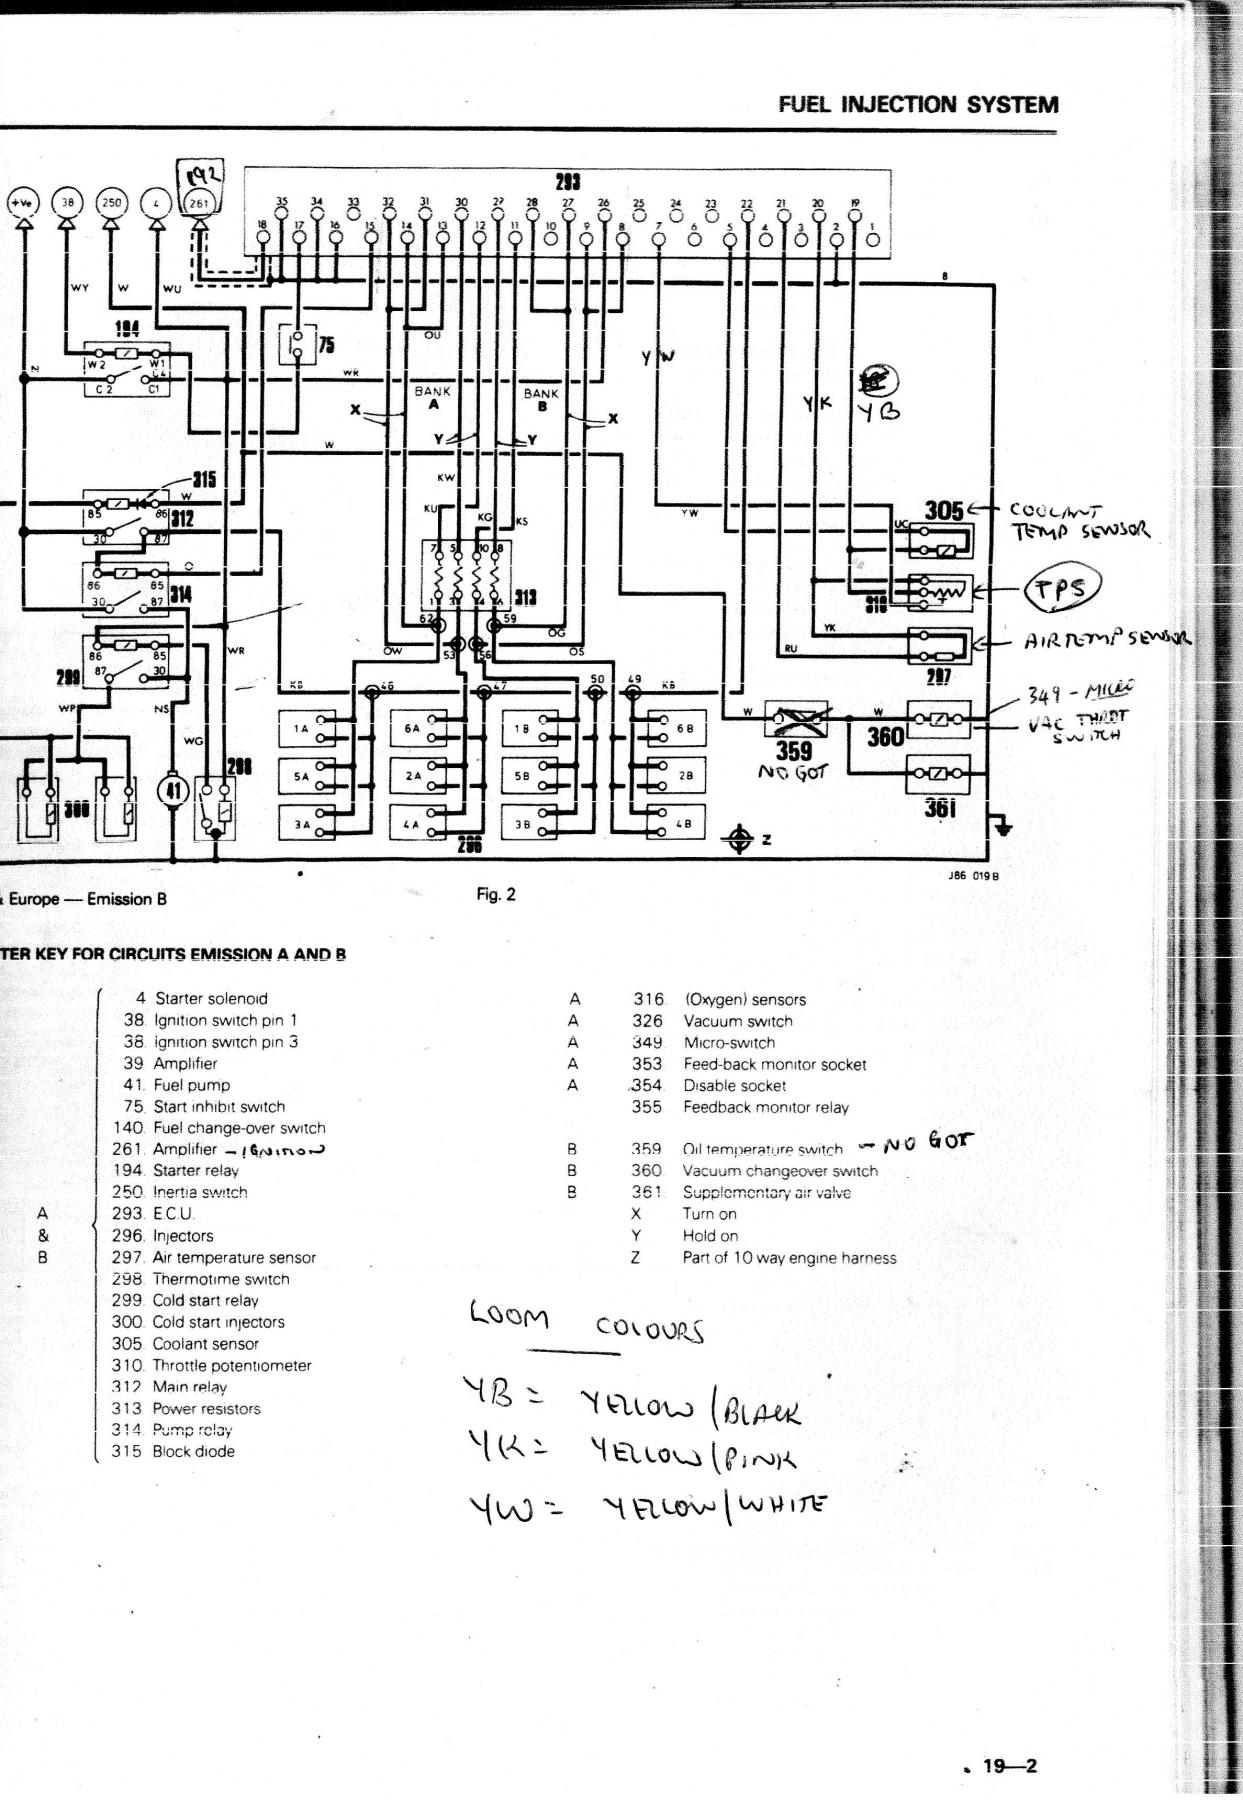 scsi wiring diagram dodge ram alarm wiring diagram dodge auto ignition wiring schematics jaguar xj series ignition auto jaguar xj6 wiring schematic jodebal com on ignition